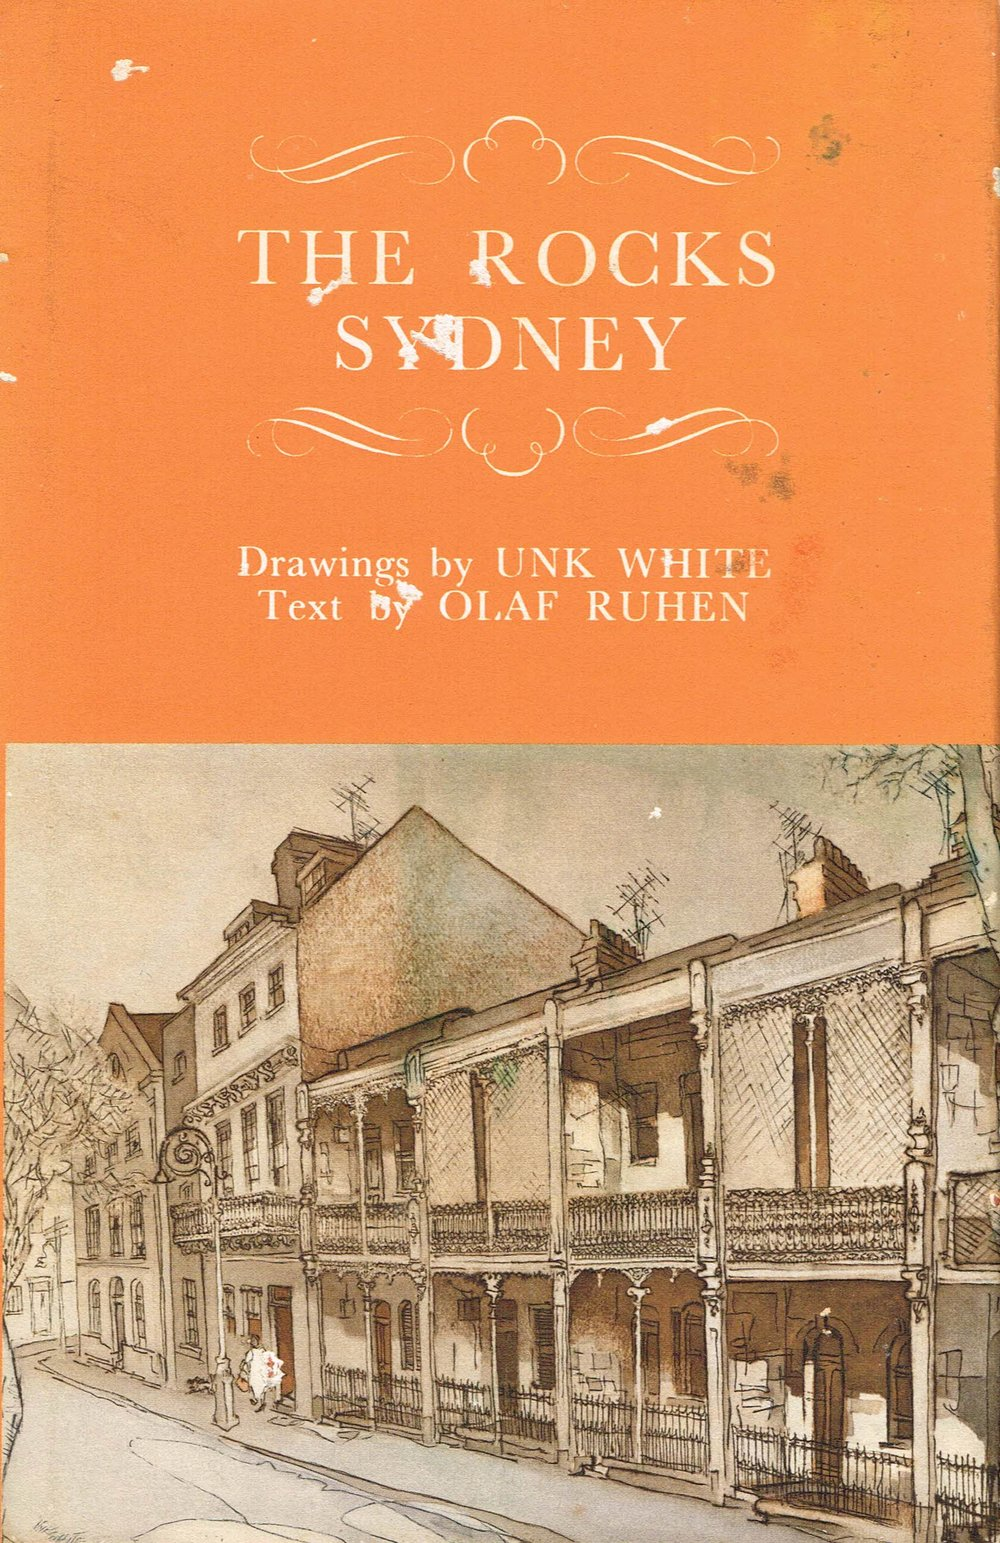 The Rocks Sydney Drawings by Unk White, text by Olaf Ruhen